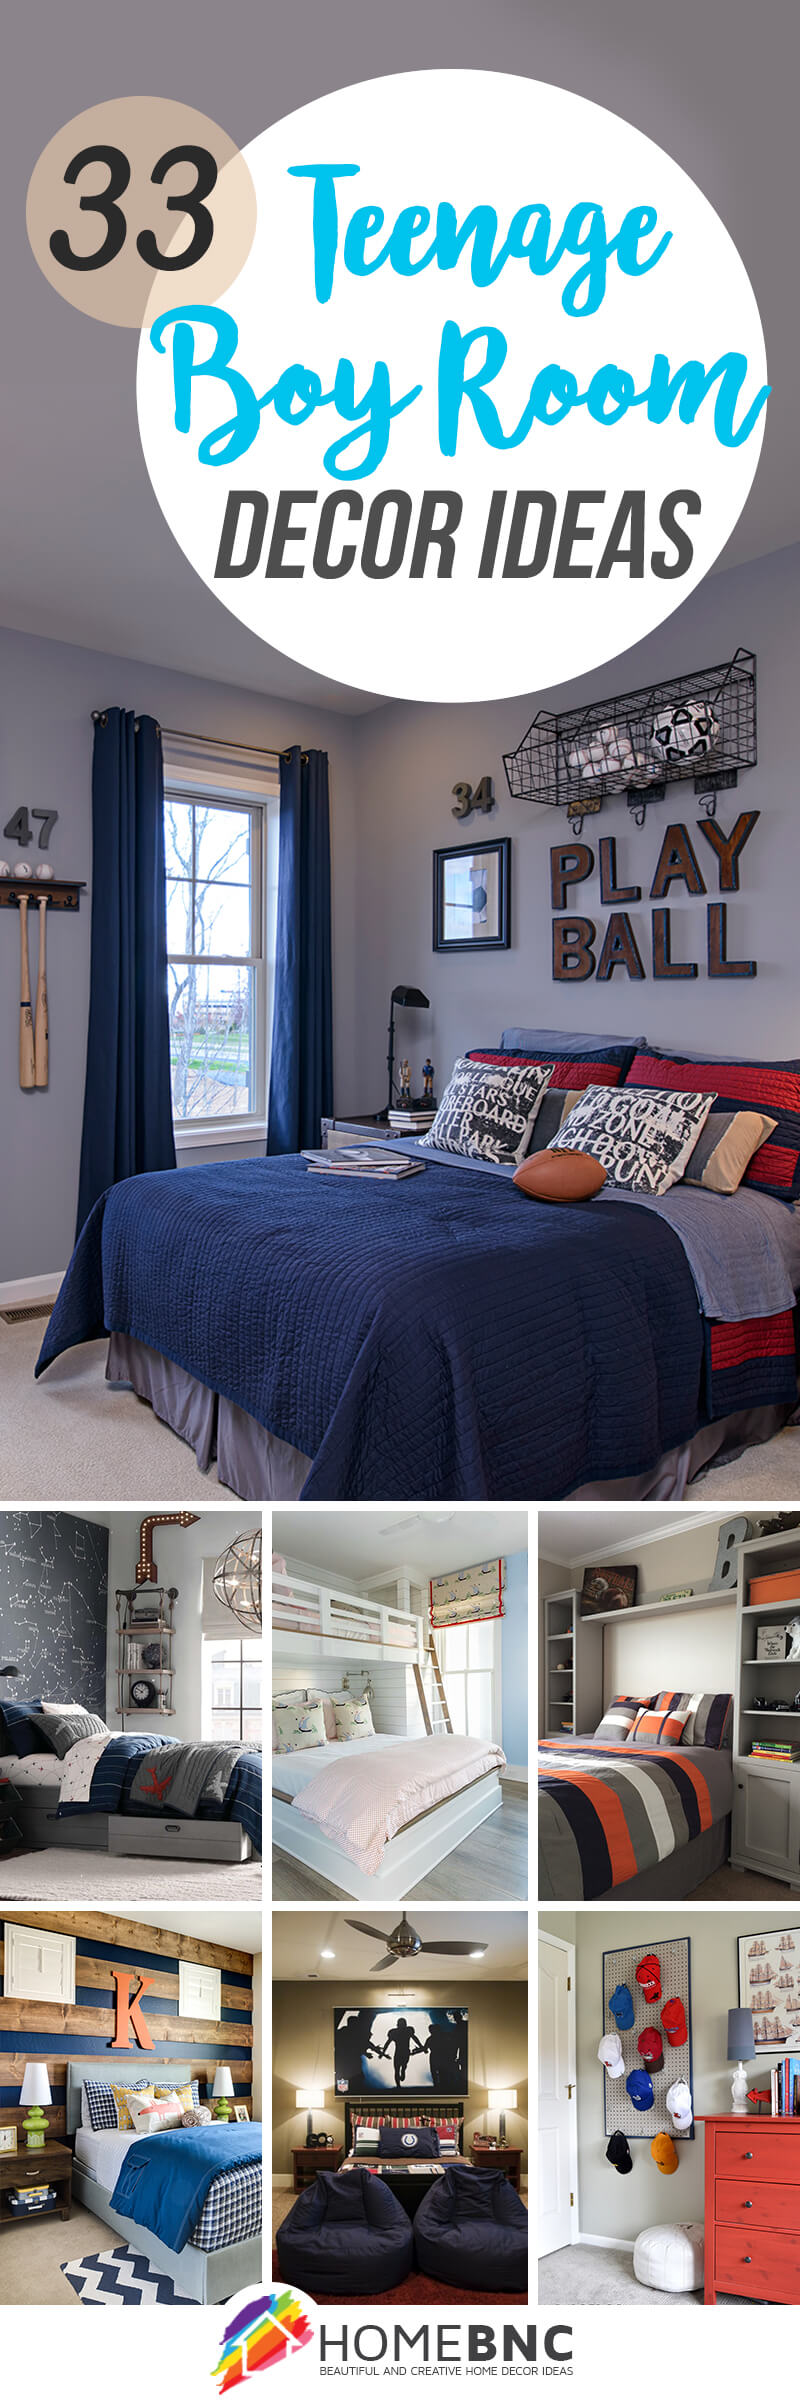 33 On Trend Age Boy Room Decor Ideas From Sophisticated To Sporty